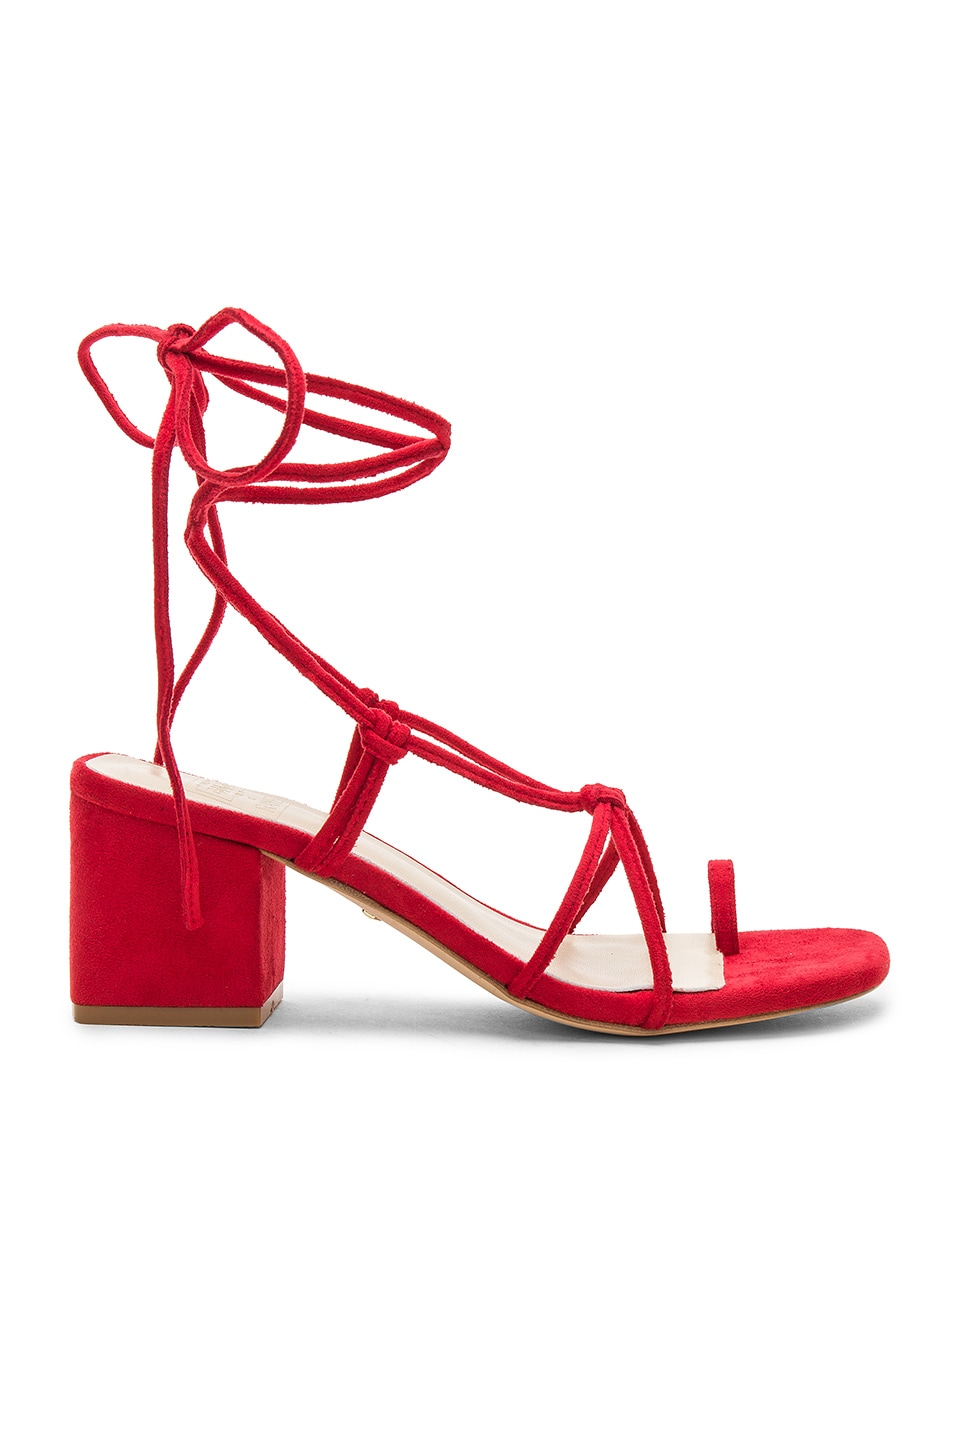 RAYE x STONE_COLD_FOX Bellissima Sandal in Red